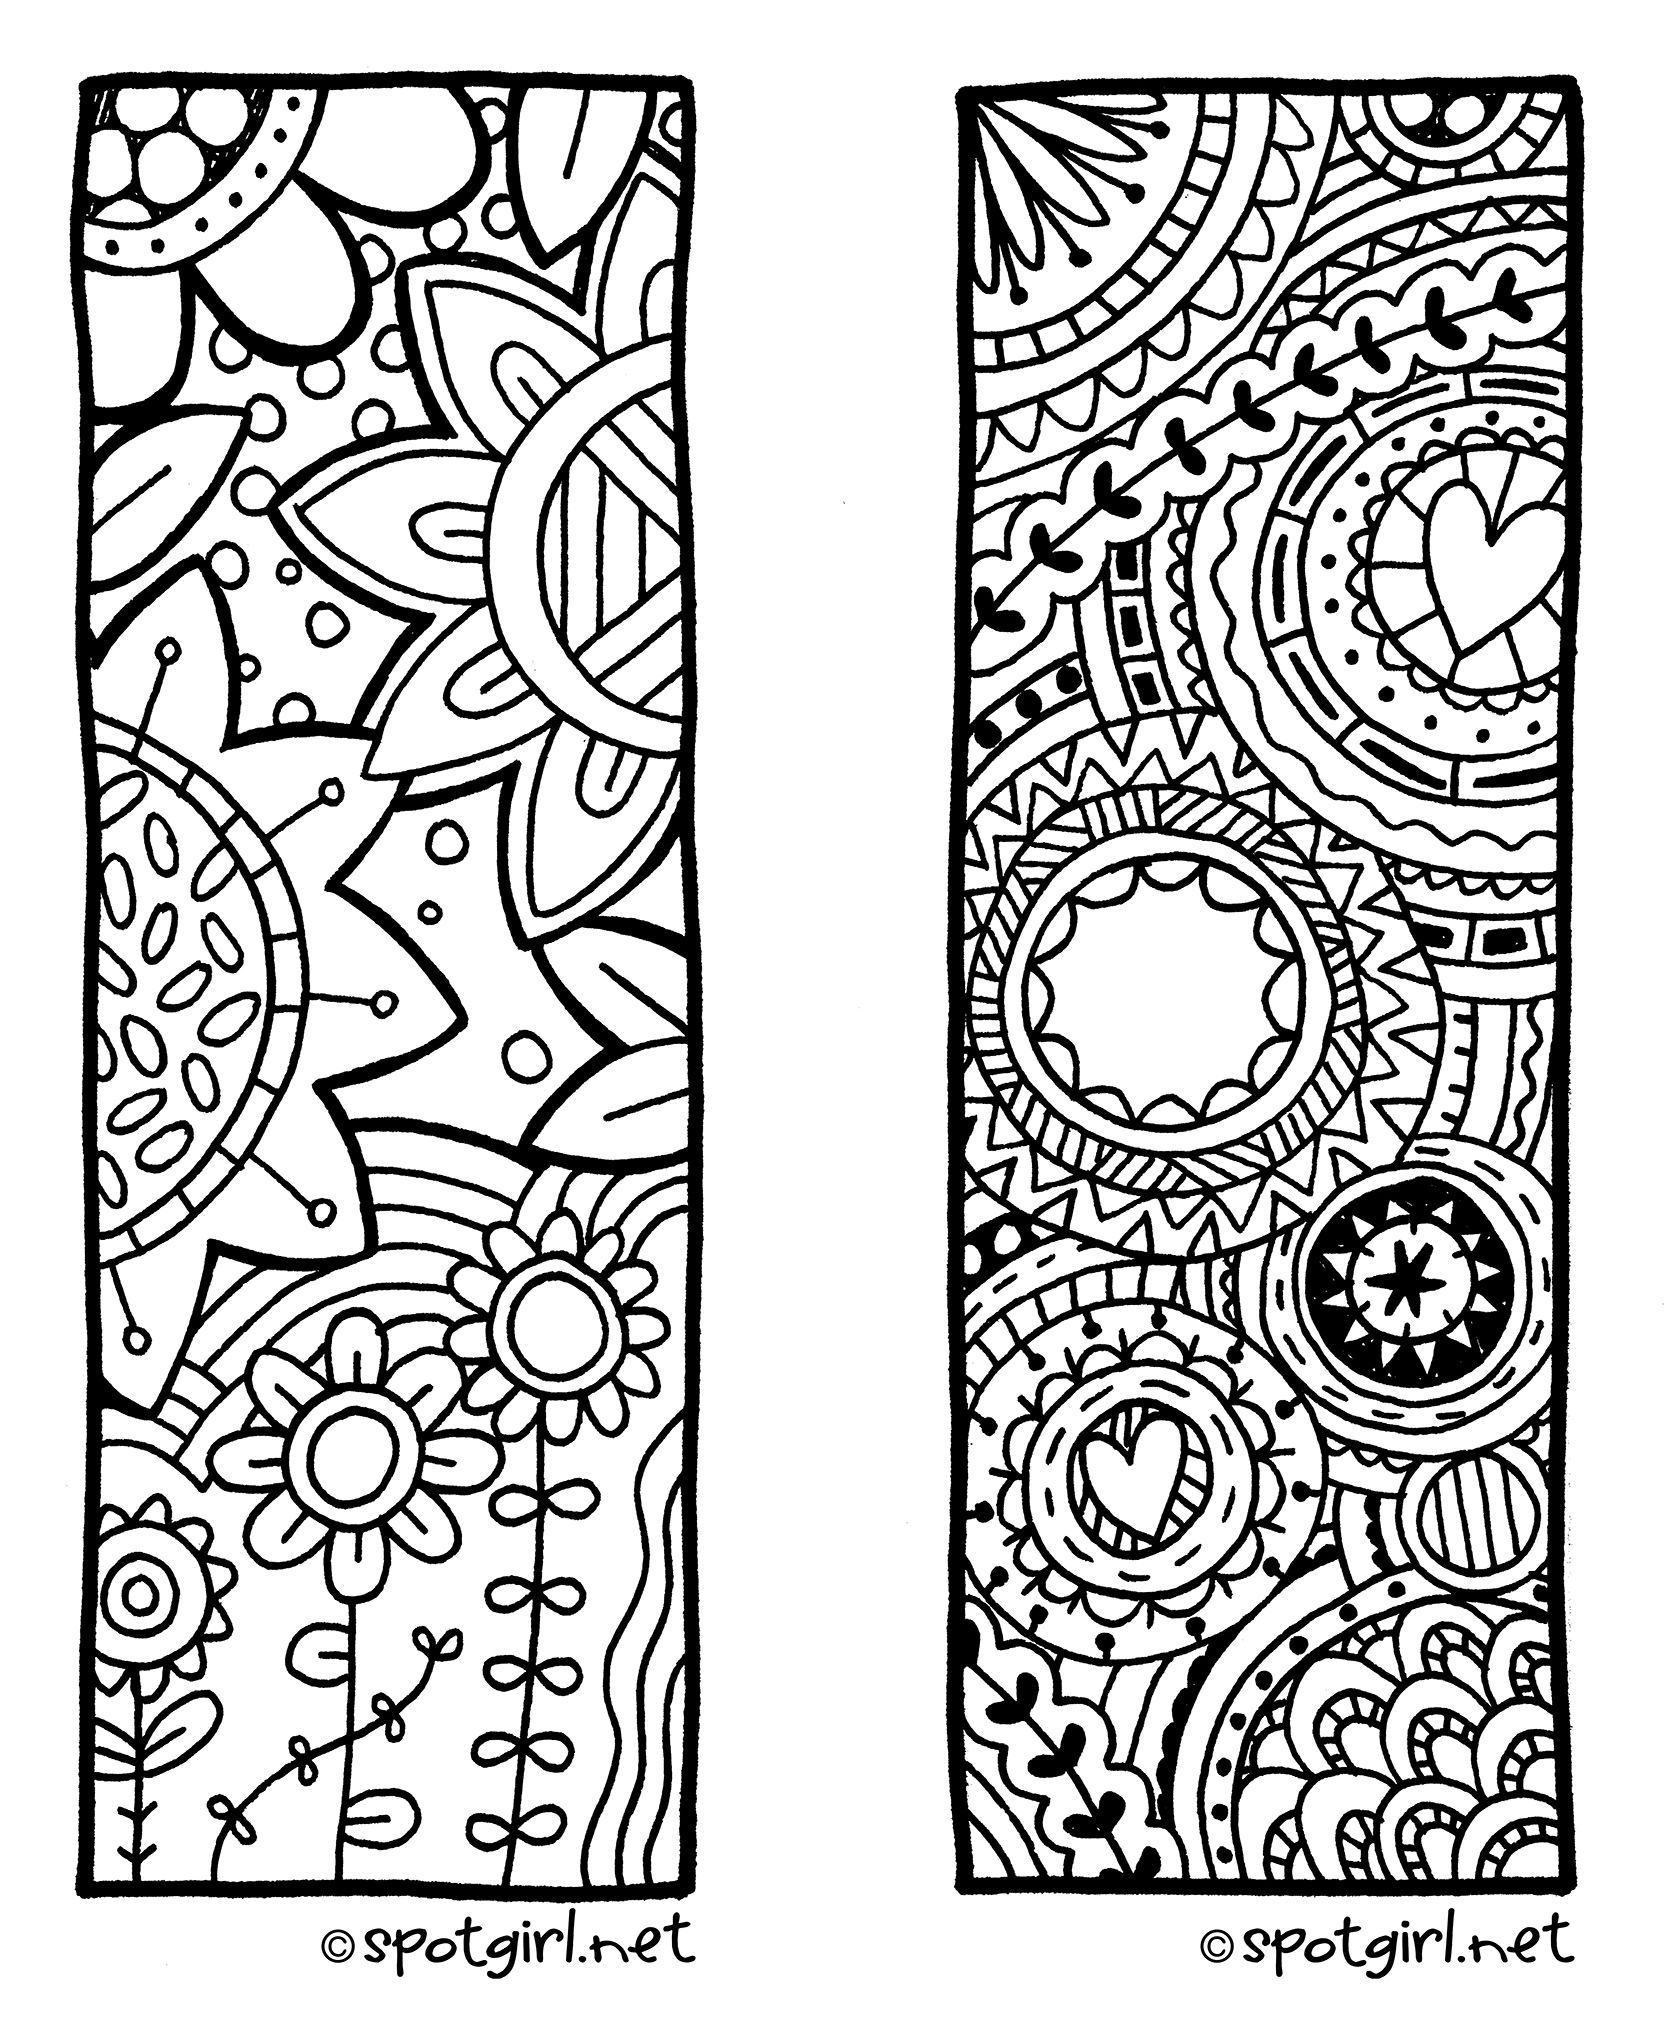 Valentine bookmark to color - Zentangle Bookmark Printable From Spotgirl Hotcakes Blogspot Com